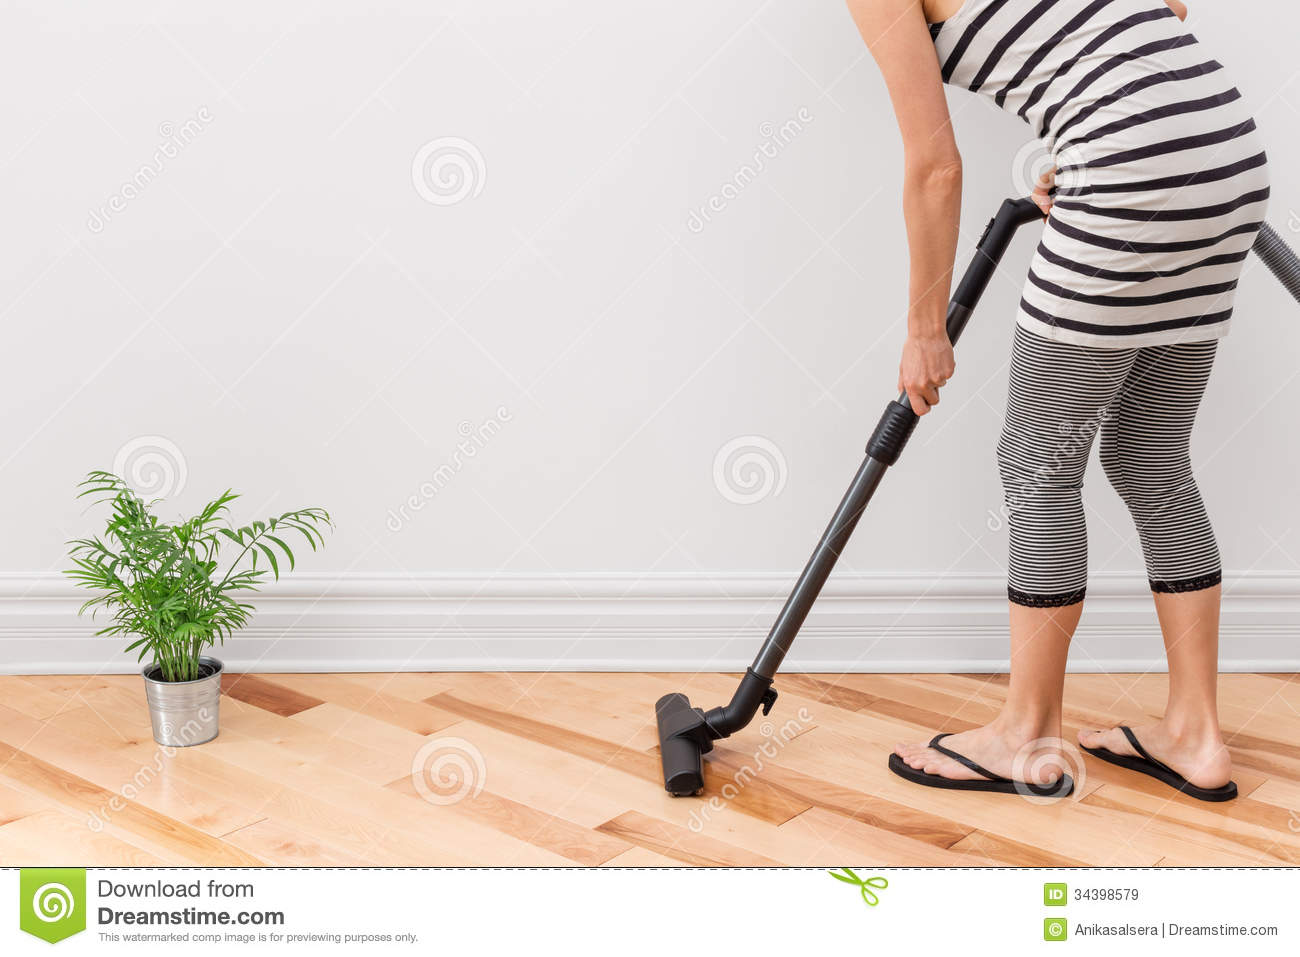 woman vacuum cleaning the room royalty free stock images